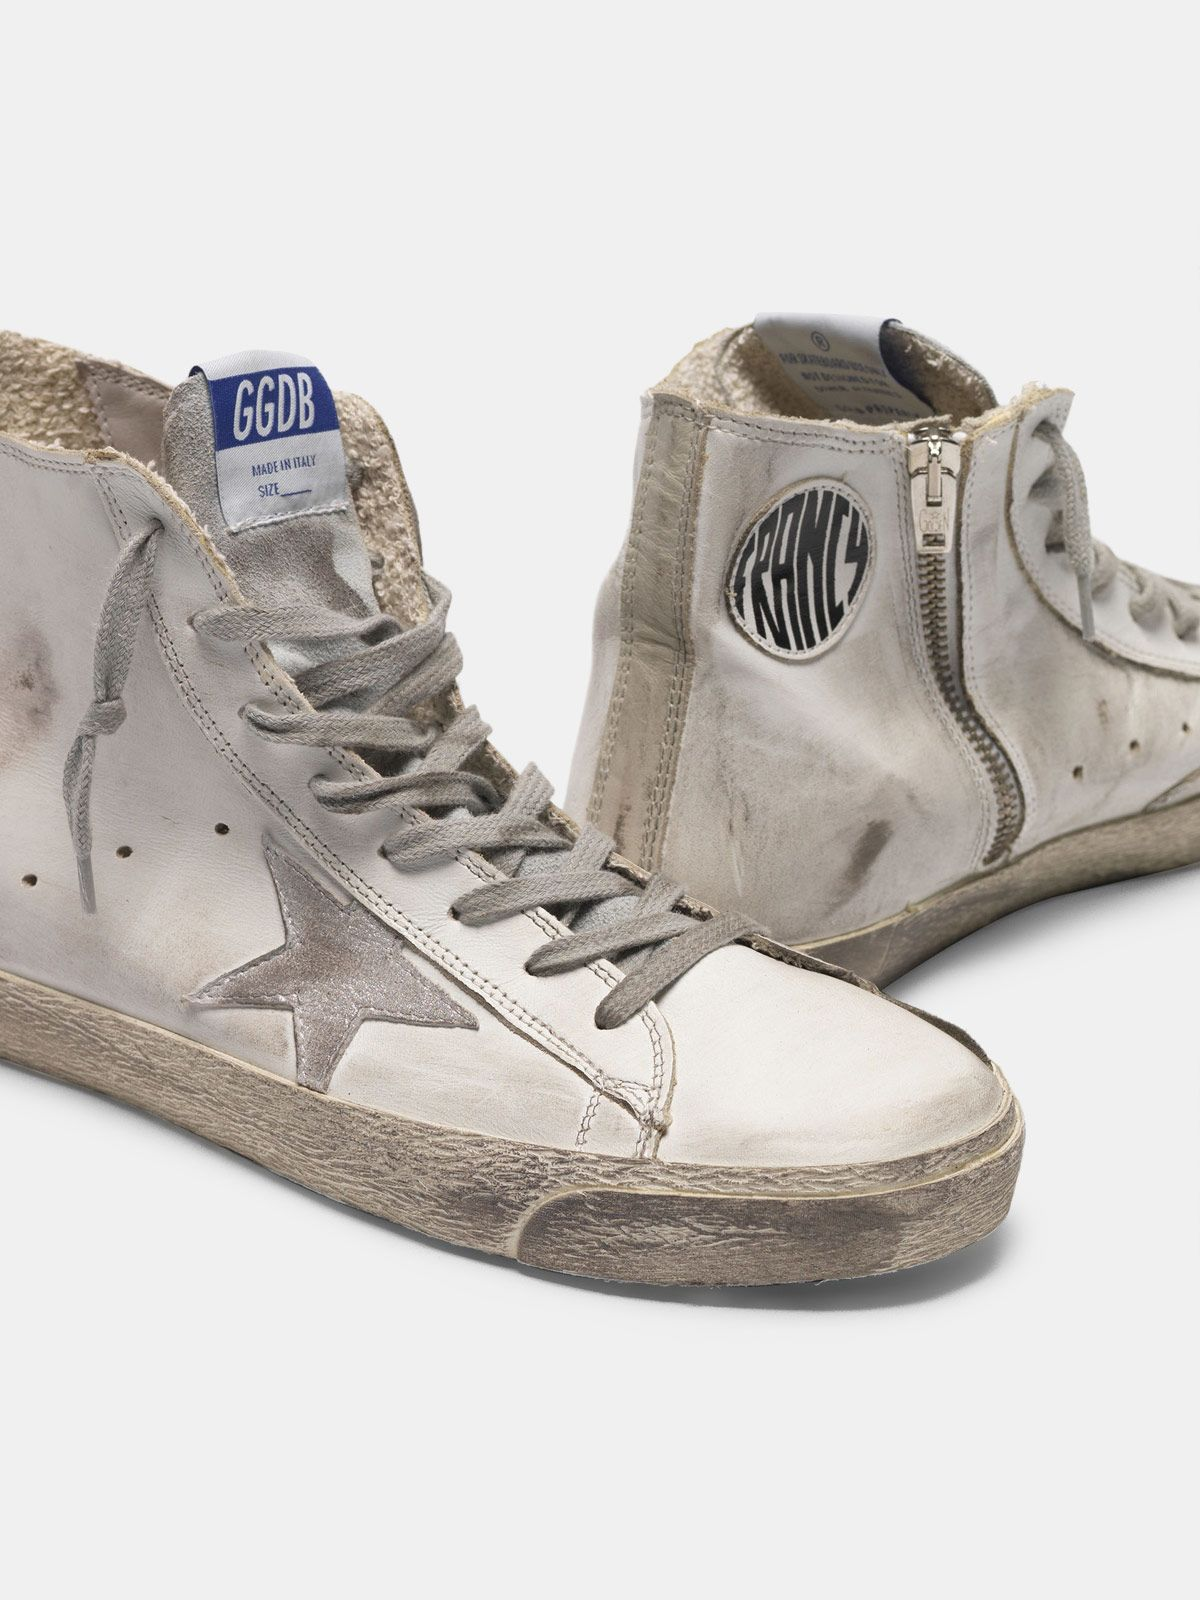 Golden Goose - Francy sneakers in leather with suede star in